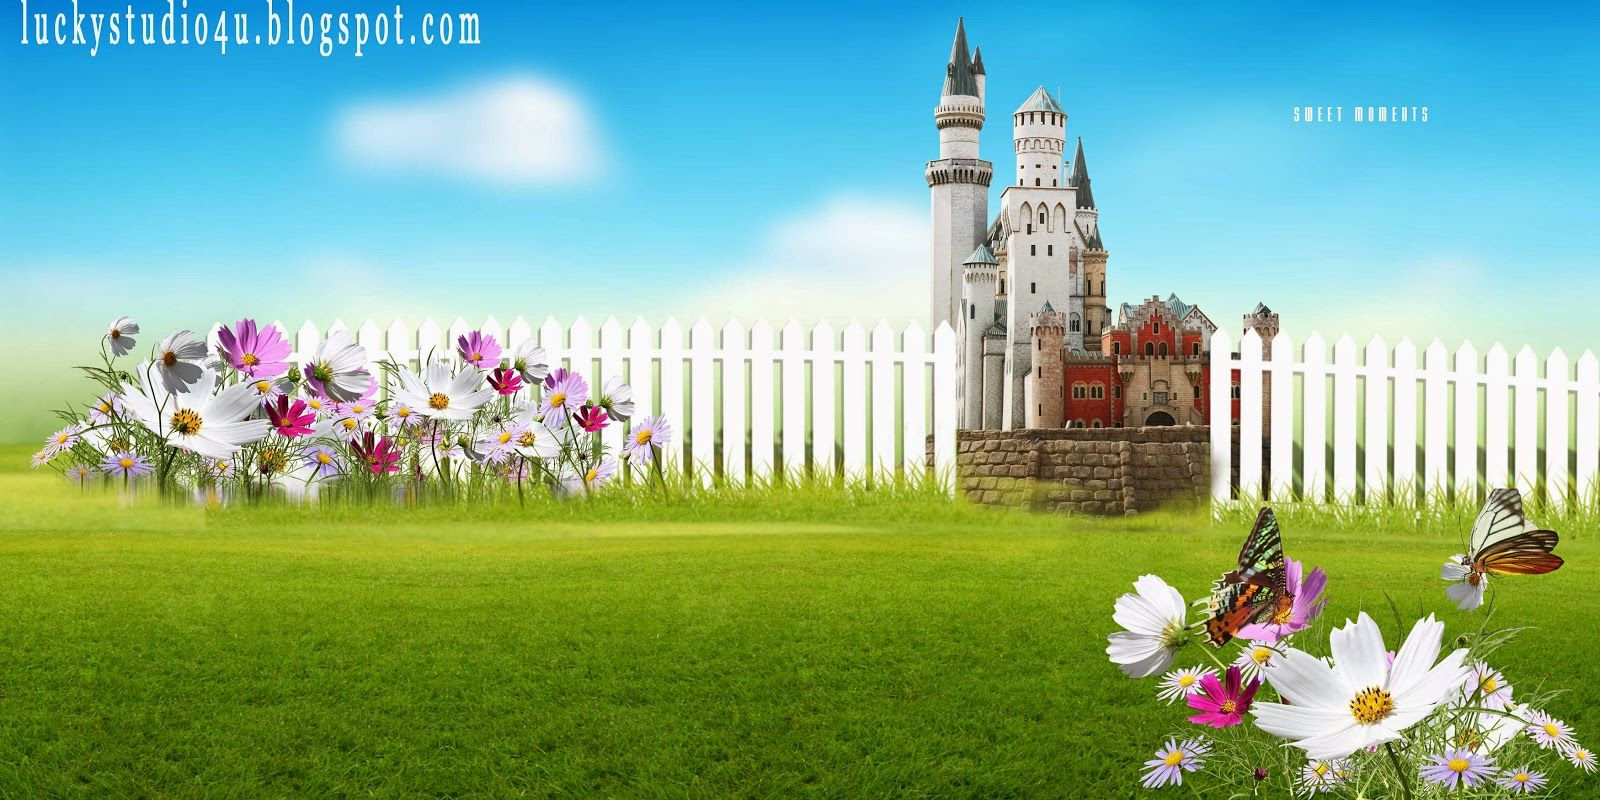 Photoshop Background Templates Free Download 9 Background Check All Photoshop Backgrounds Psd Background Background